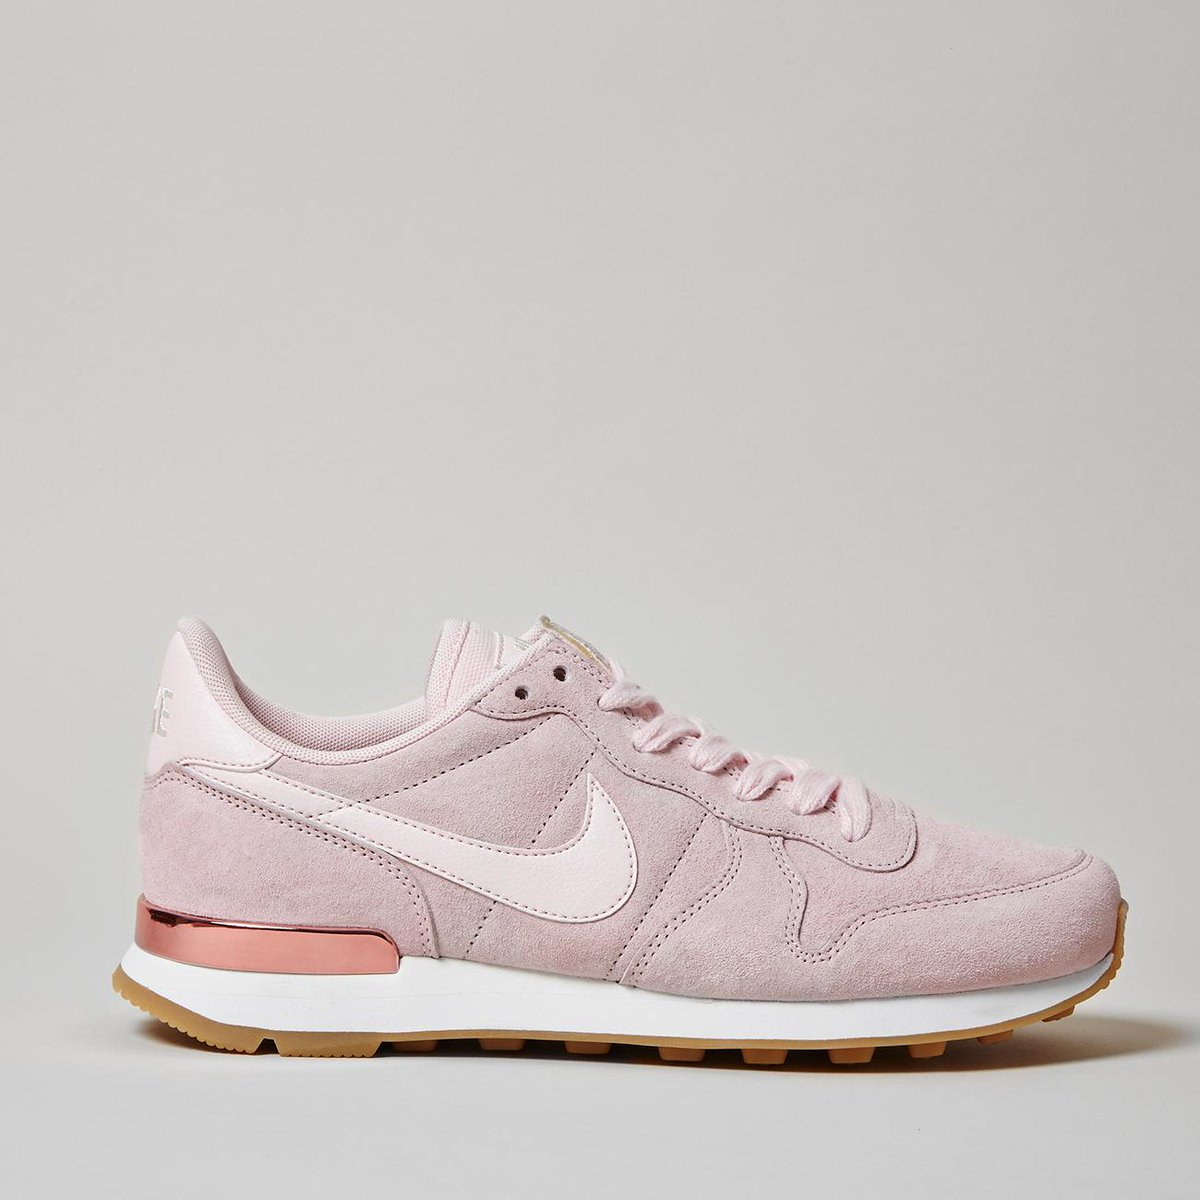 quality design d3e1c f4eee launching today nike internationalist in exclusive prism pink nike ownit2017